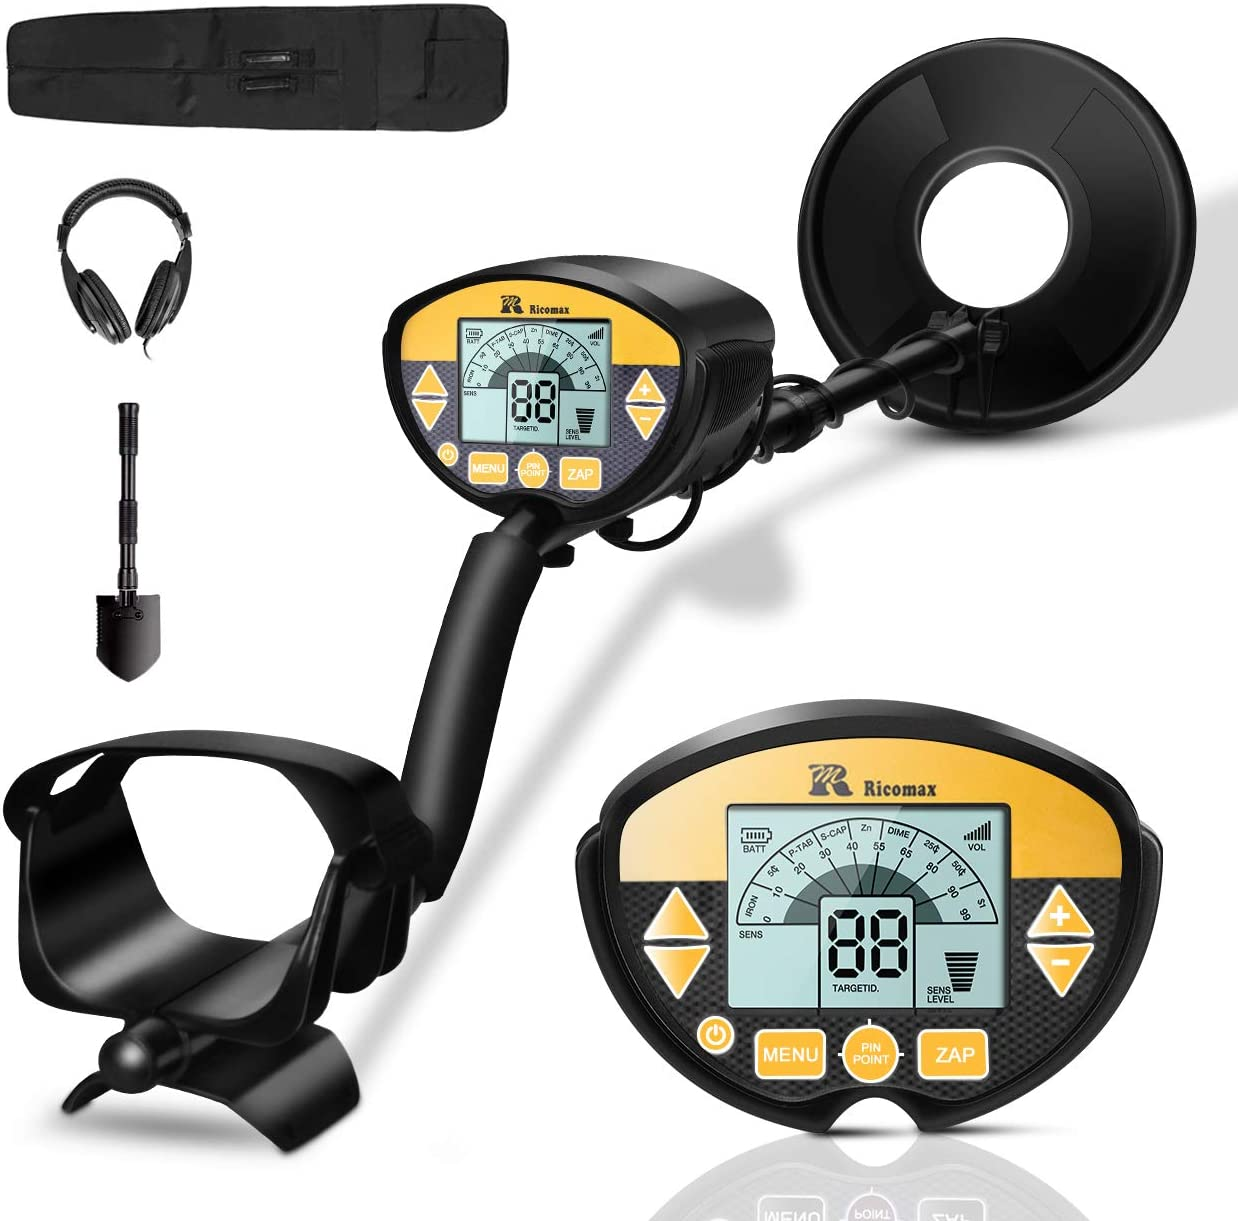 RM RICOMAX Metal Detector – Professional Waterproof with High-Accuracy Metal Detector for Adults Kids, 9-Inches Detection Depth Portable Gold Detector with LCD Display Headphone Available